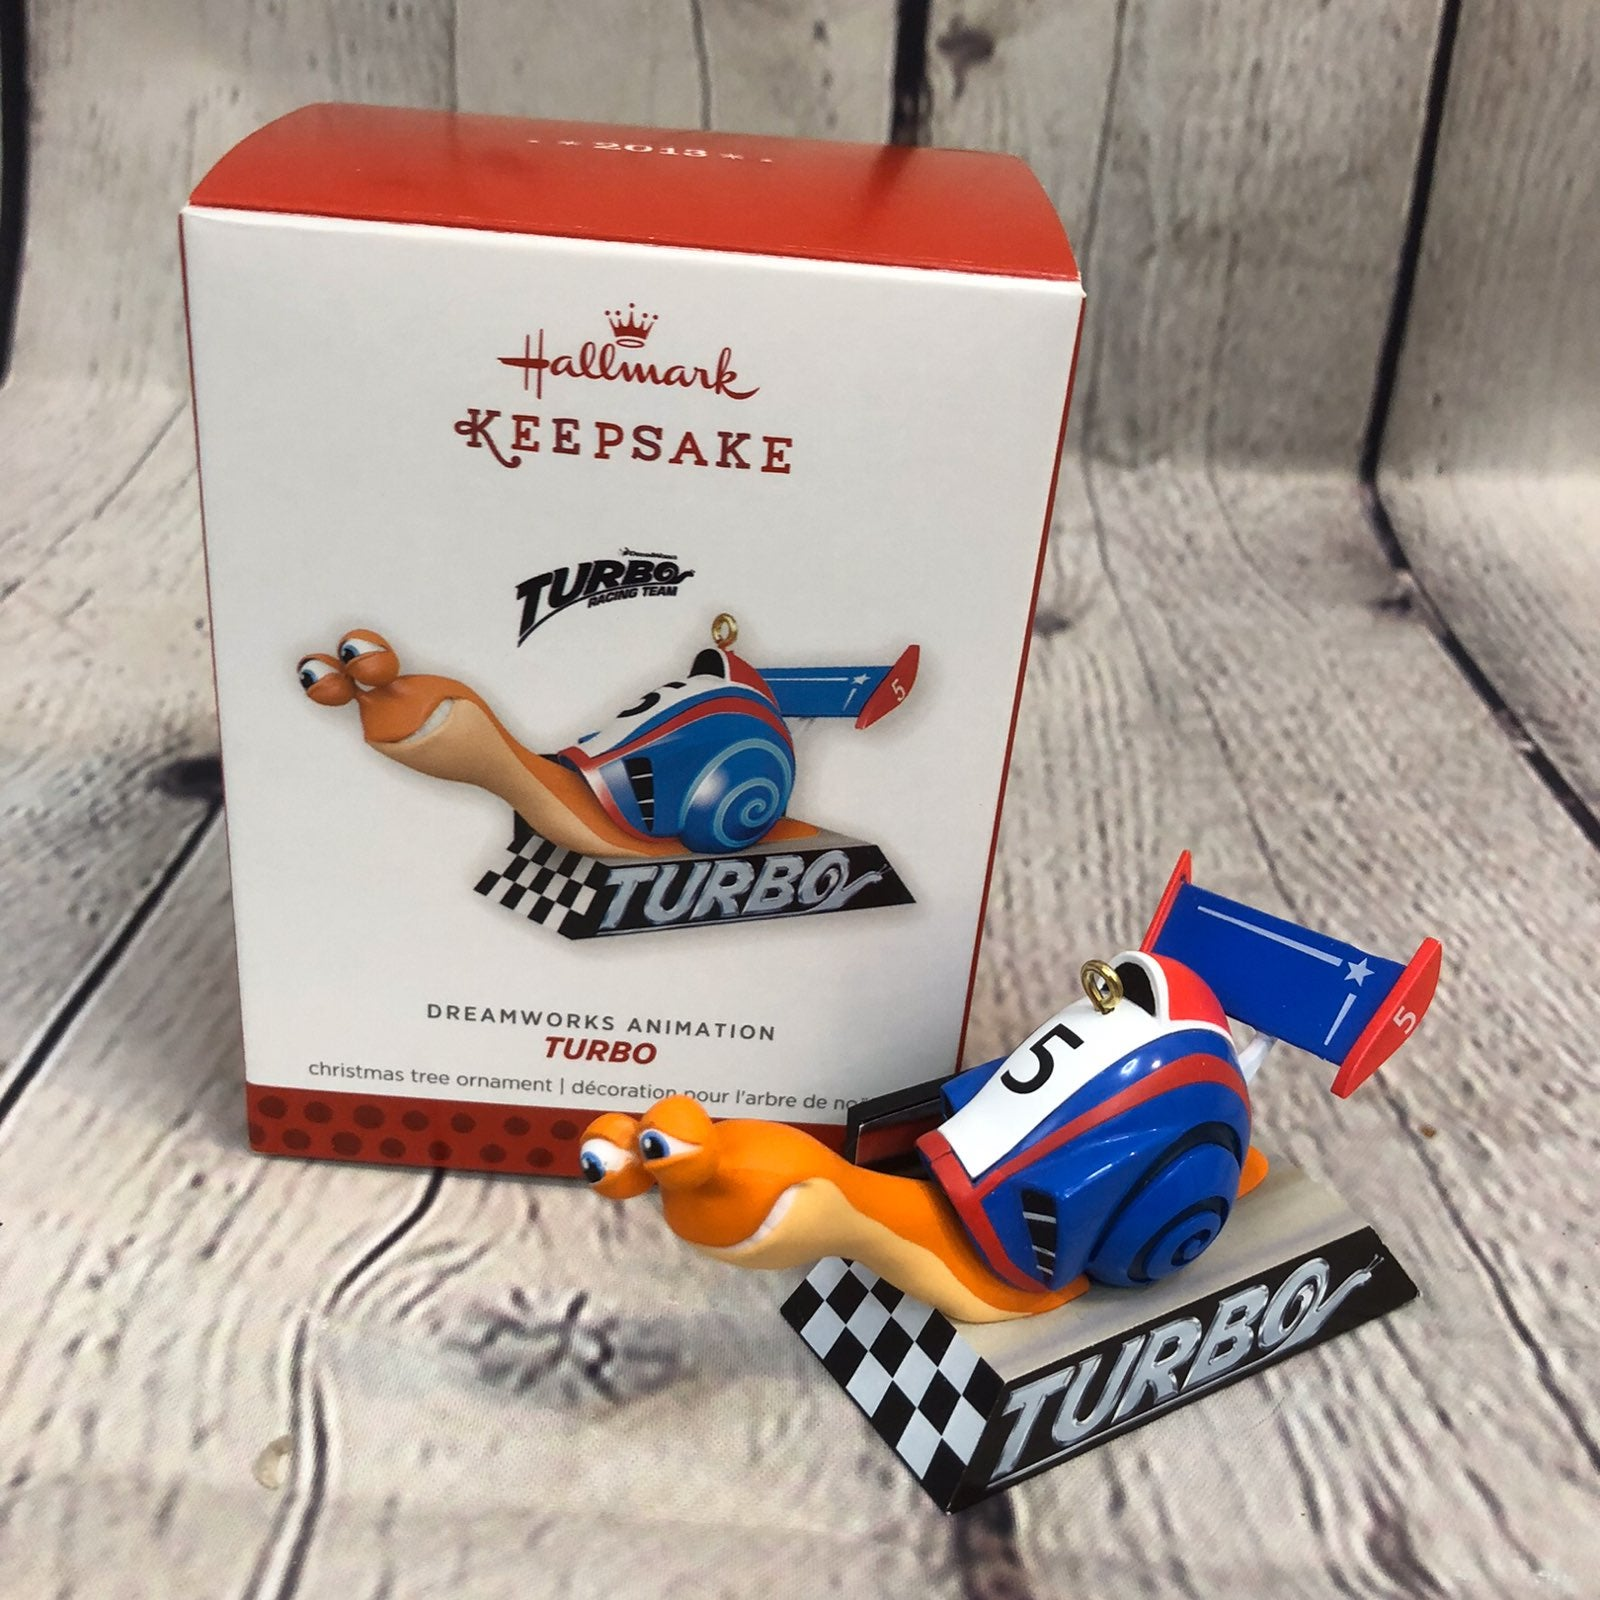 2013 HALLMARK Turbo Dreamworks Ornament